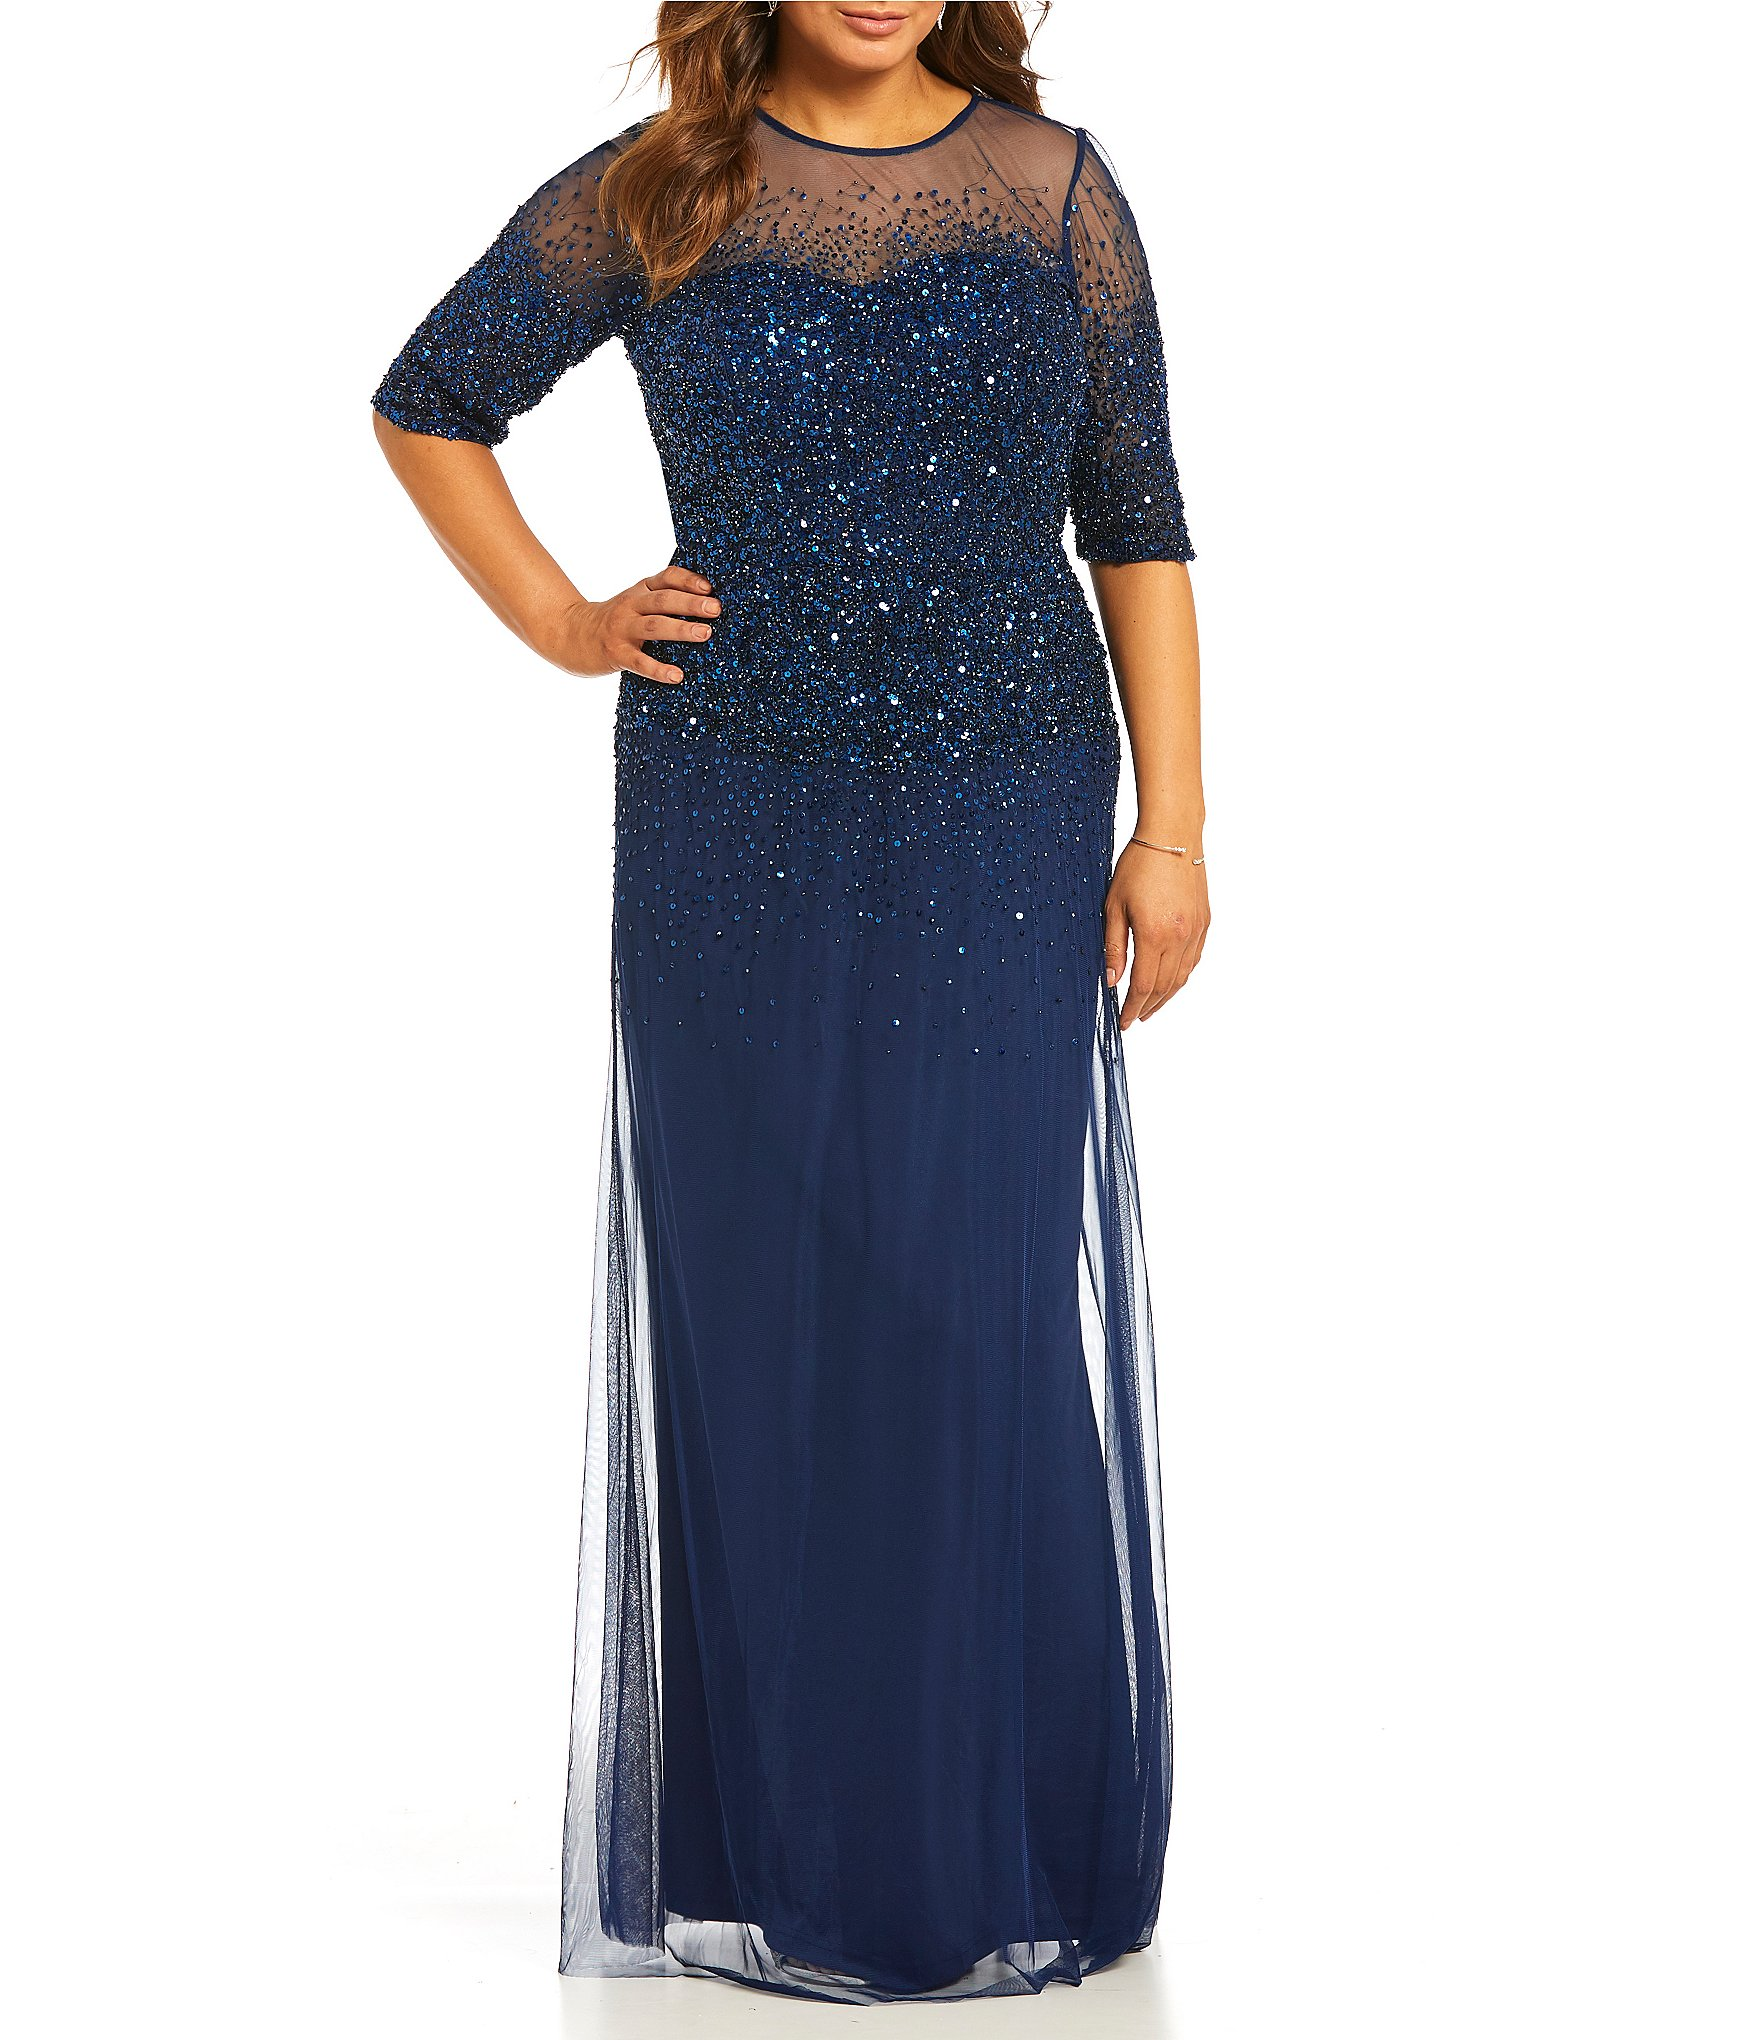 women's plus-size dresses & gowns | dillards